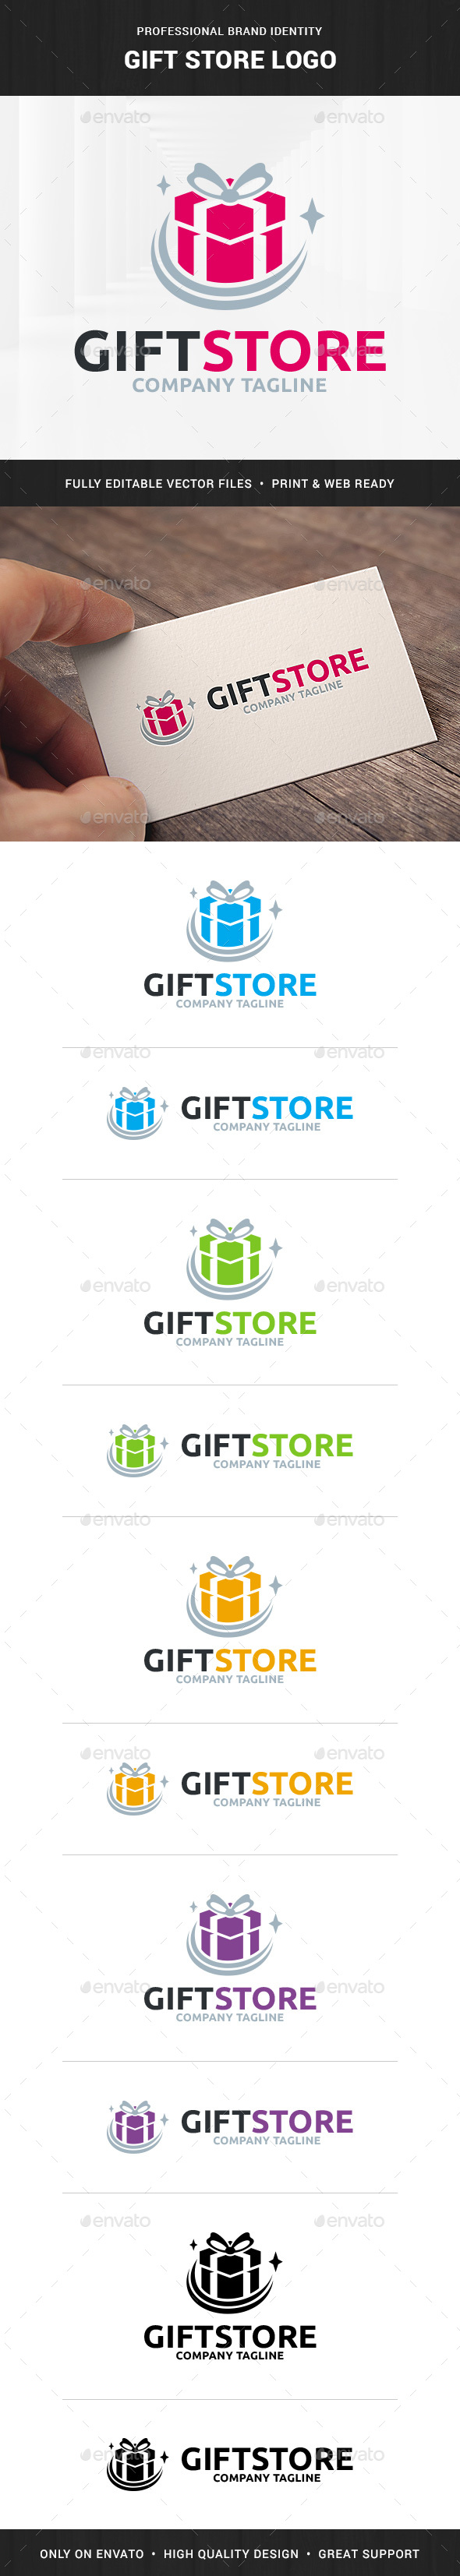 Gift Store Logo Template